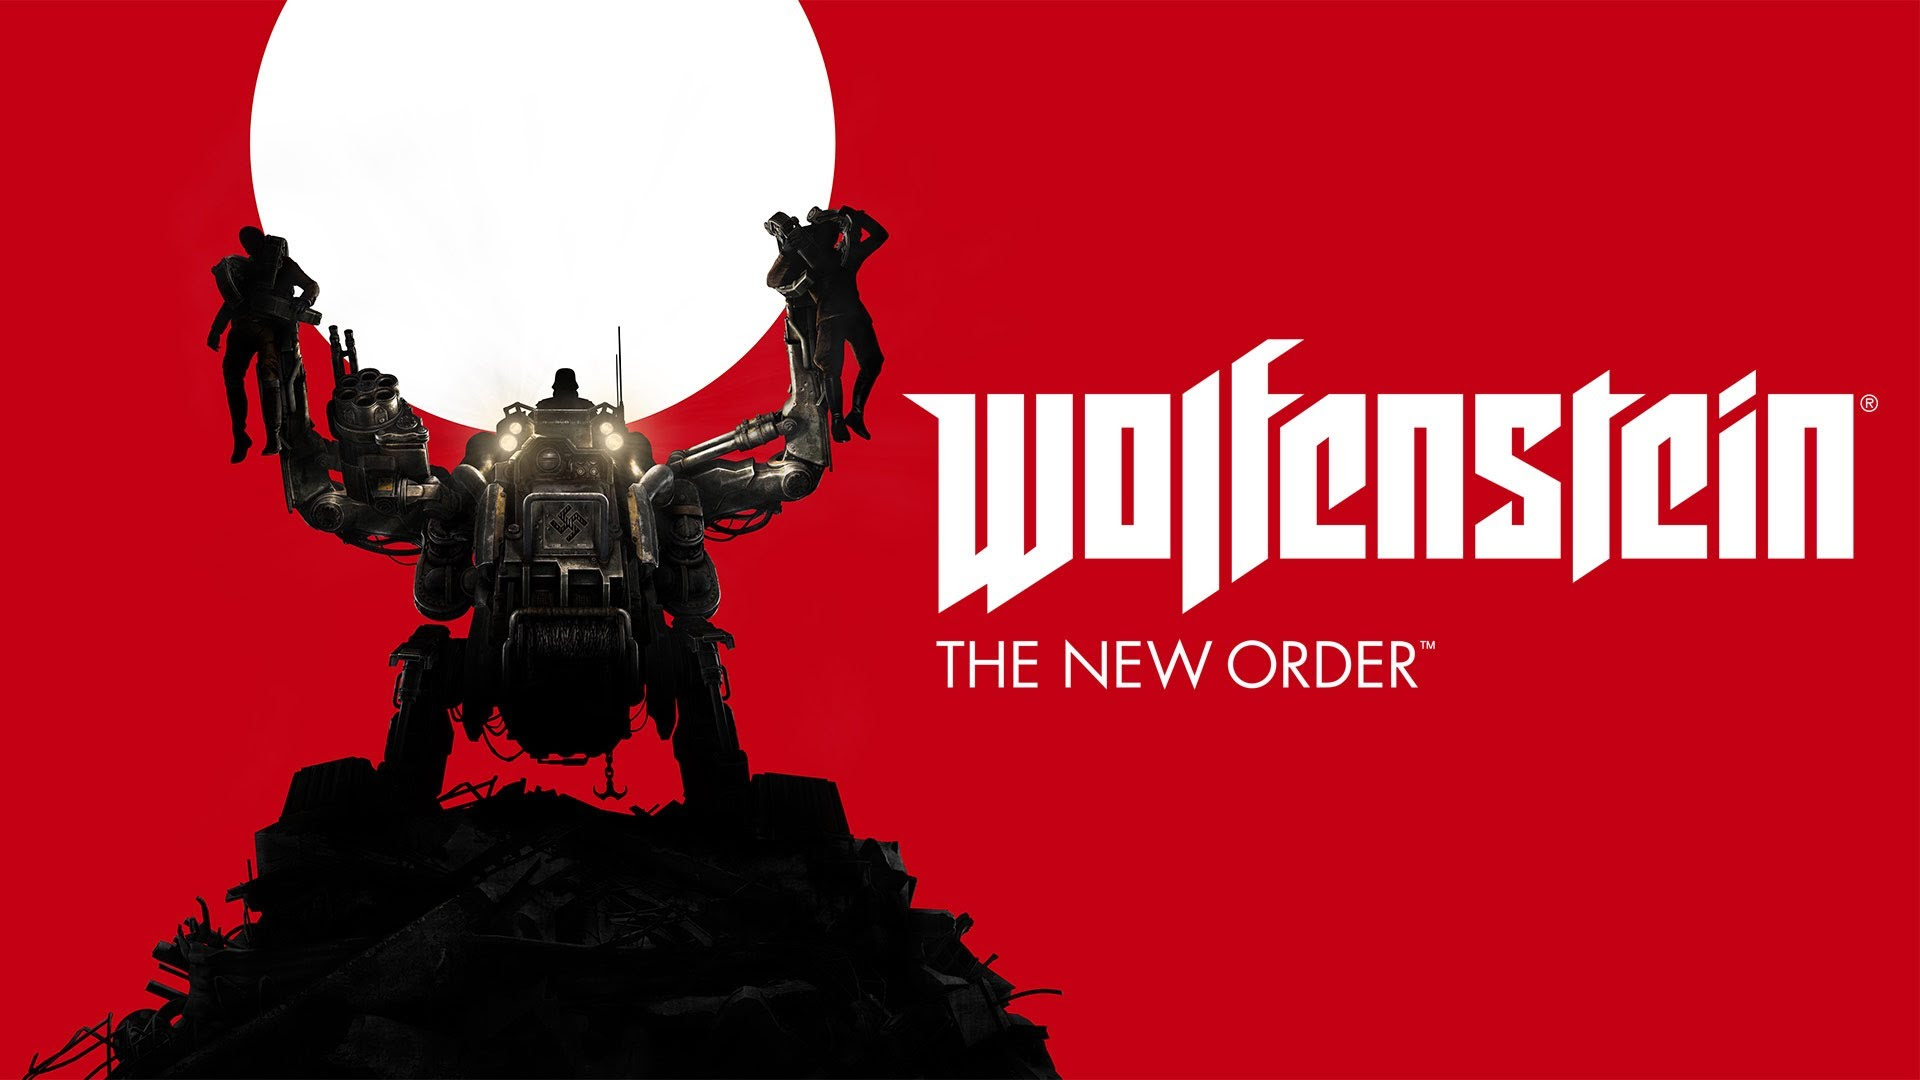 Wolfenstein The New Order Wallpaper 1920x1080 79173